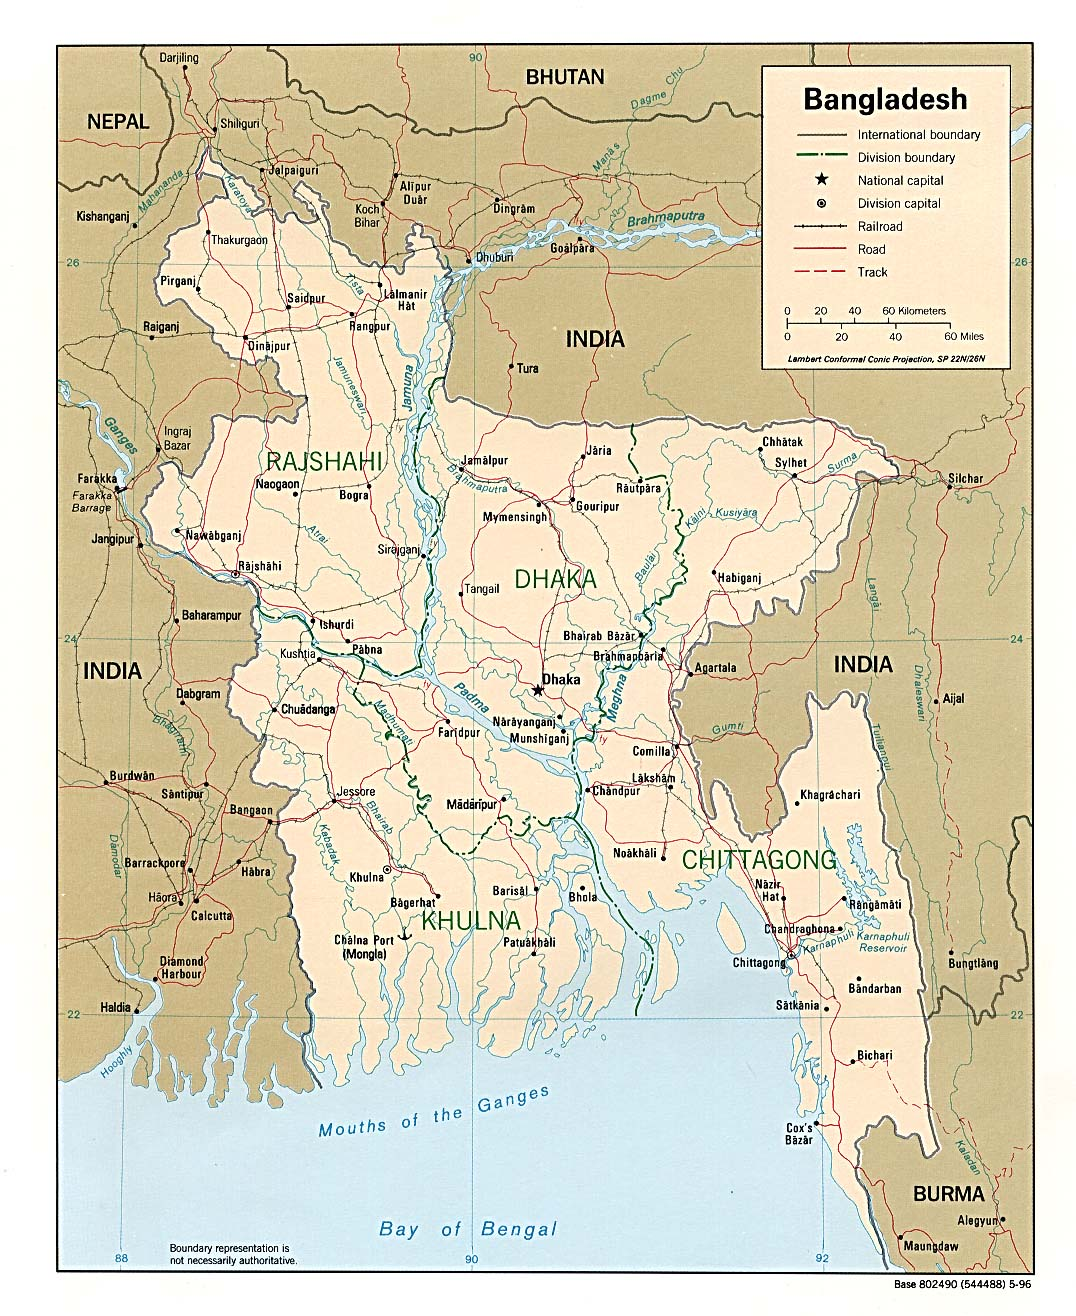 Bangladesh maps perry castaeda map collection ut library online map collection gumiabroncs Image collections